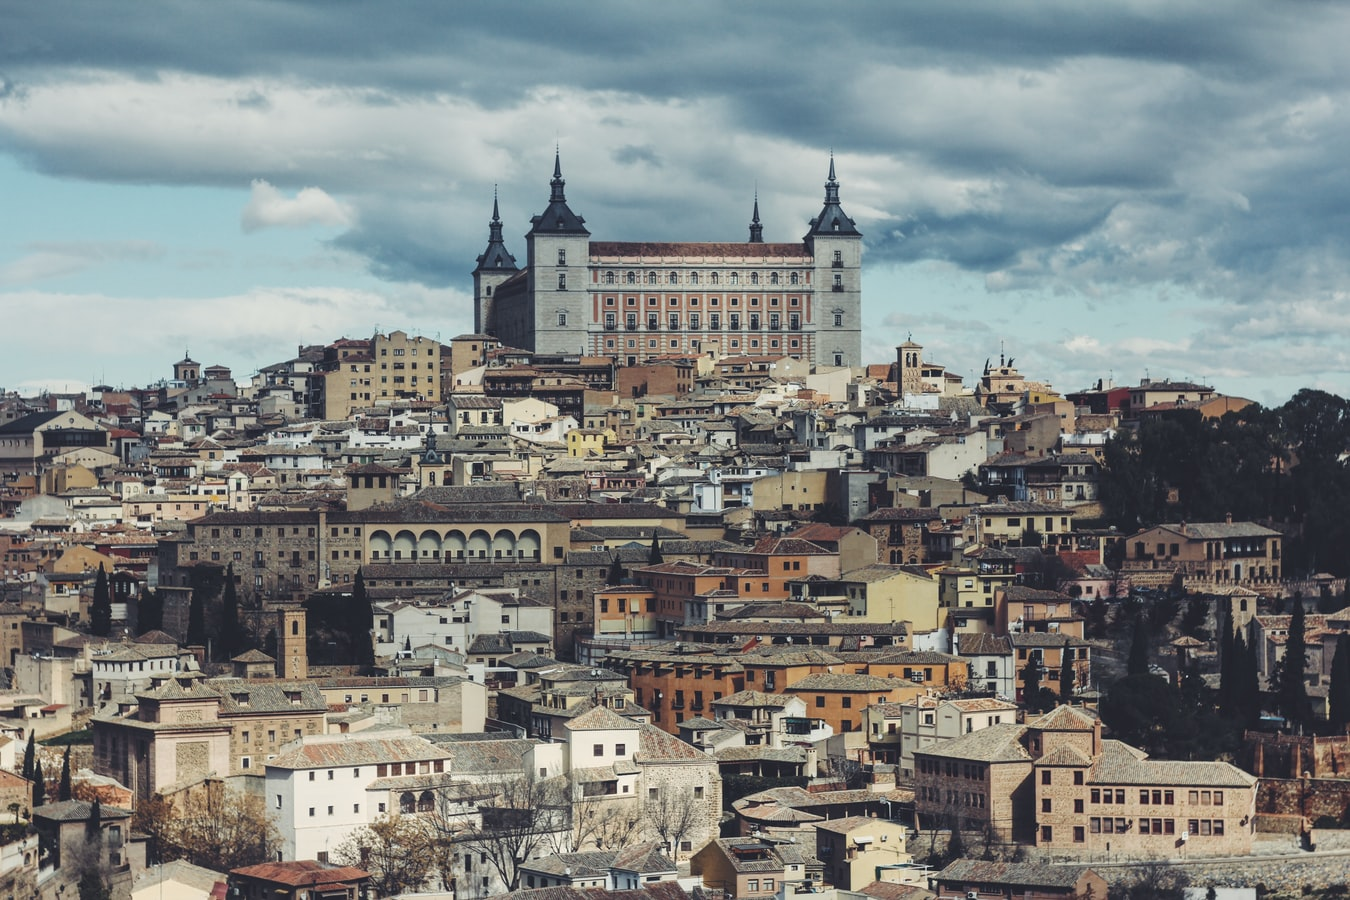 A cathedral on a hill in Toledo, Spain